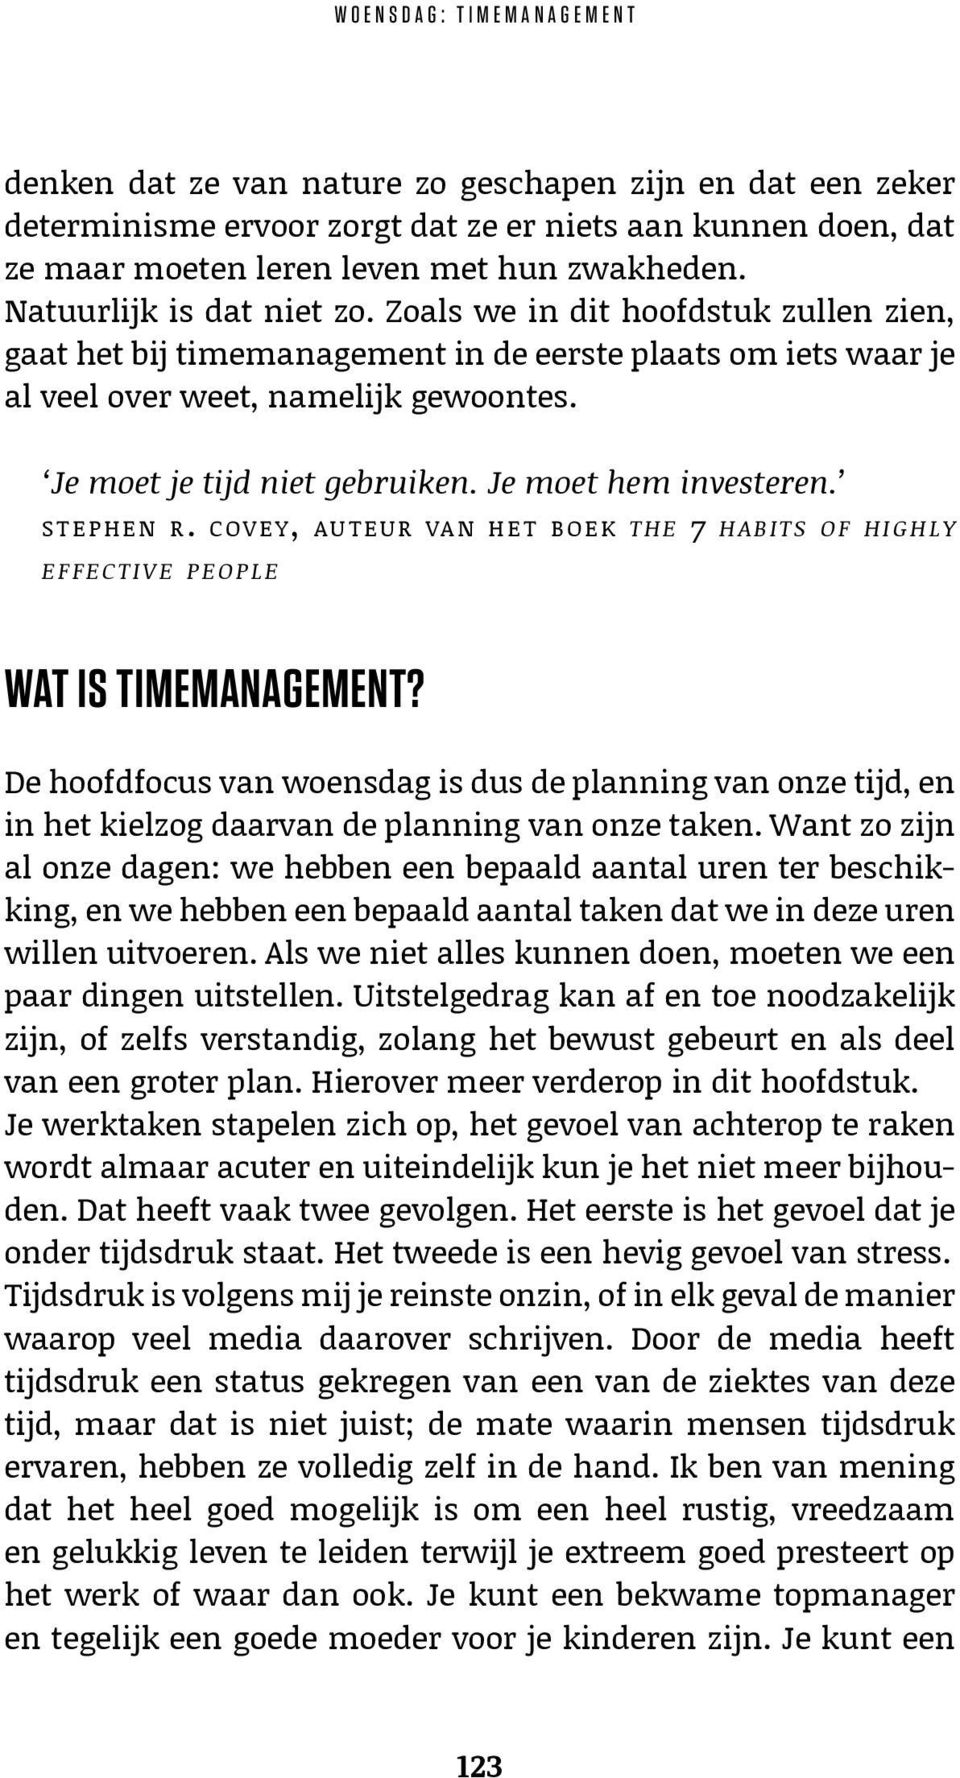 Je moet hem investeren. STEPHEN R. COVEY, AUTEUR VAN HET BOEK THE 7 HABITS OF HIGHLY EFFECTIVE PEOPLE WAT IS TIMEMANAGEMENT?